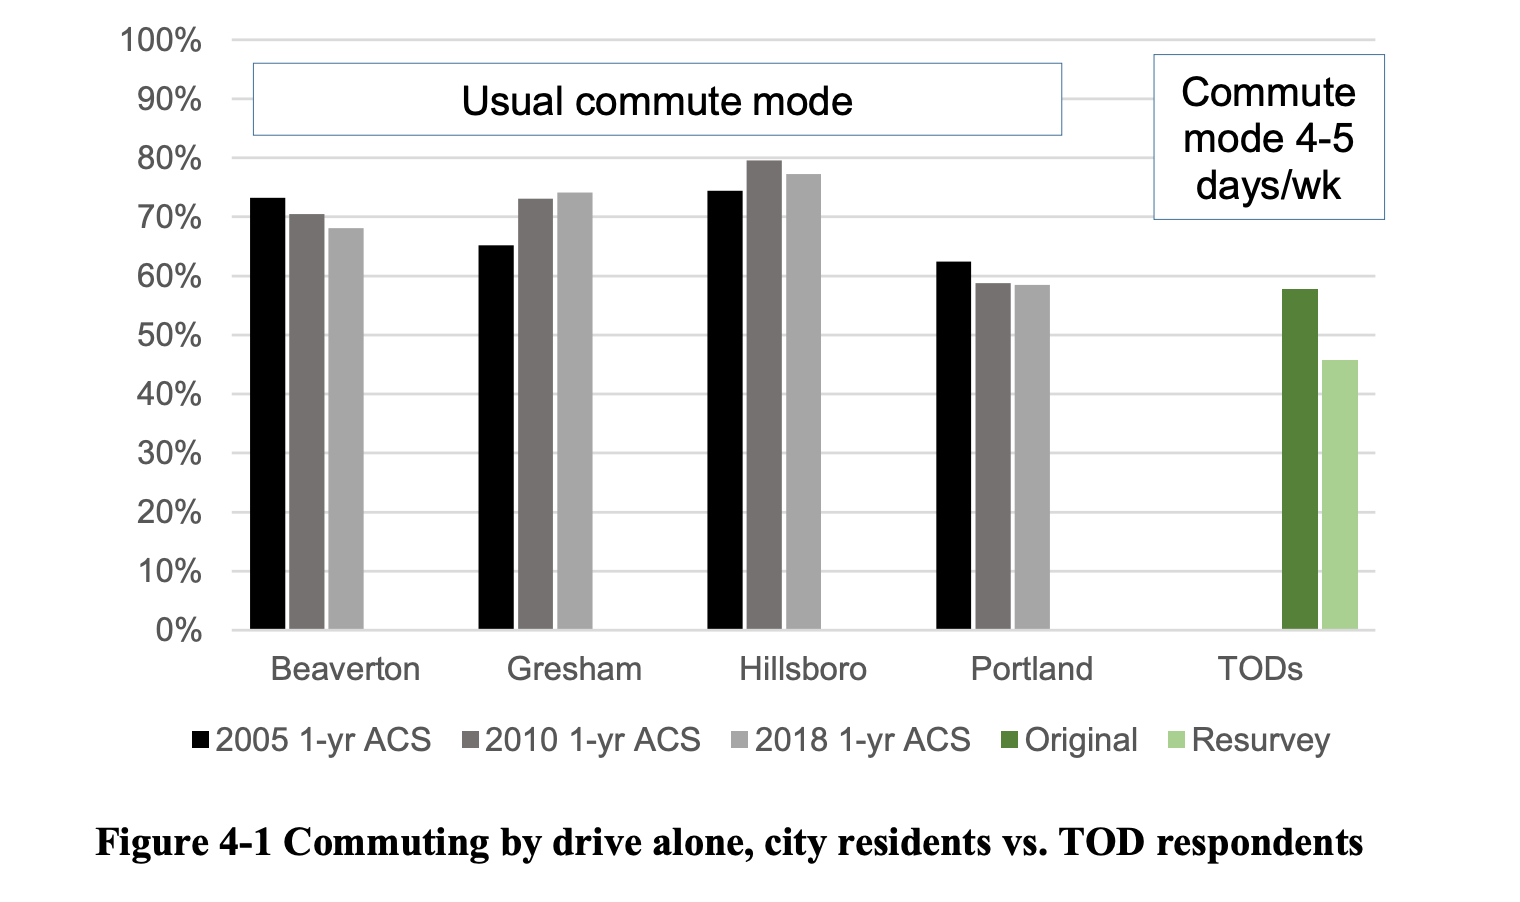 Commuting by drive alone, city residents vs TOD residents (TOD residents commute by driving alone less, graph shows)